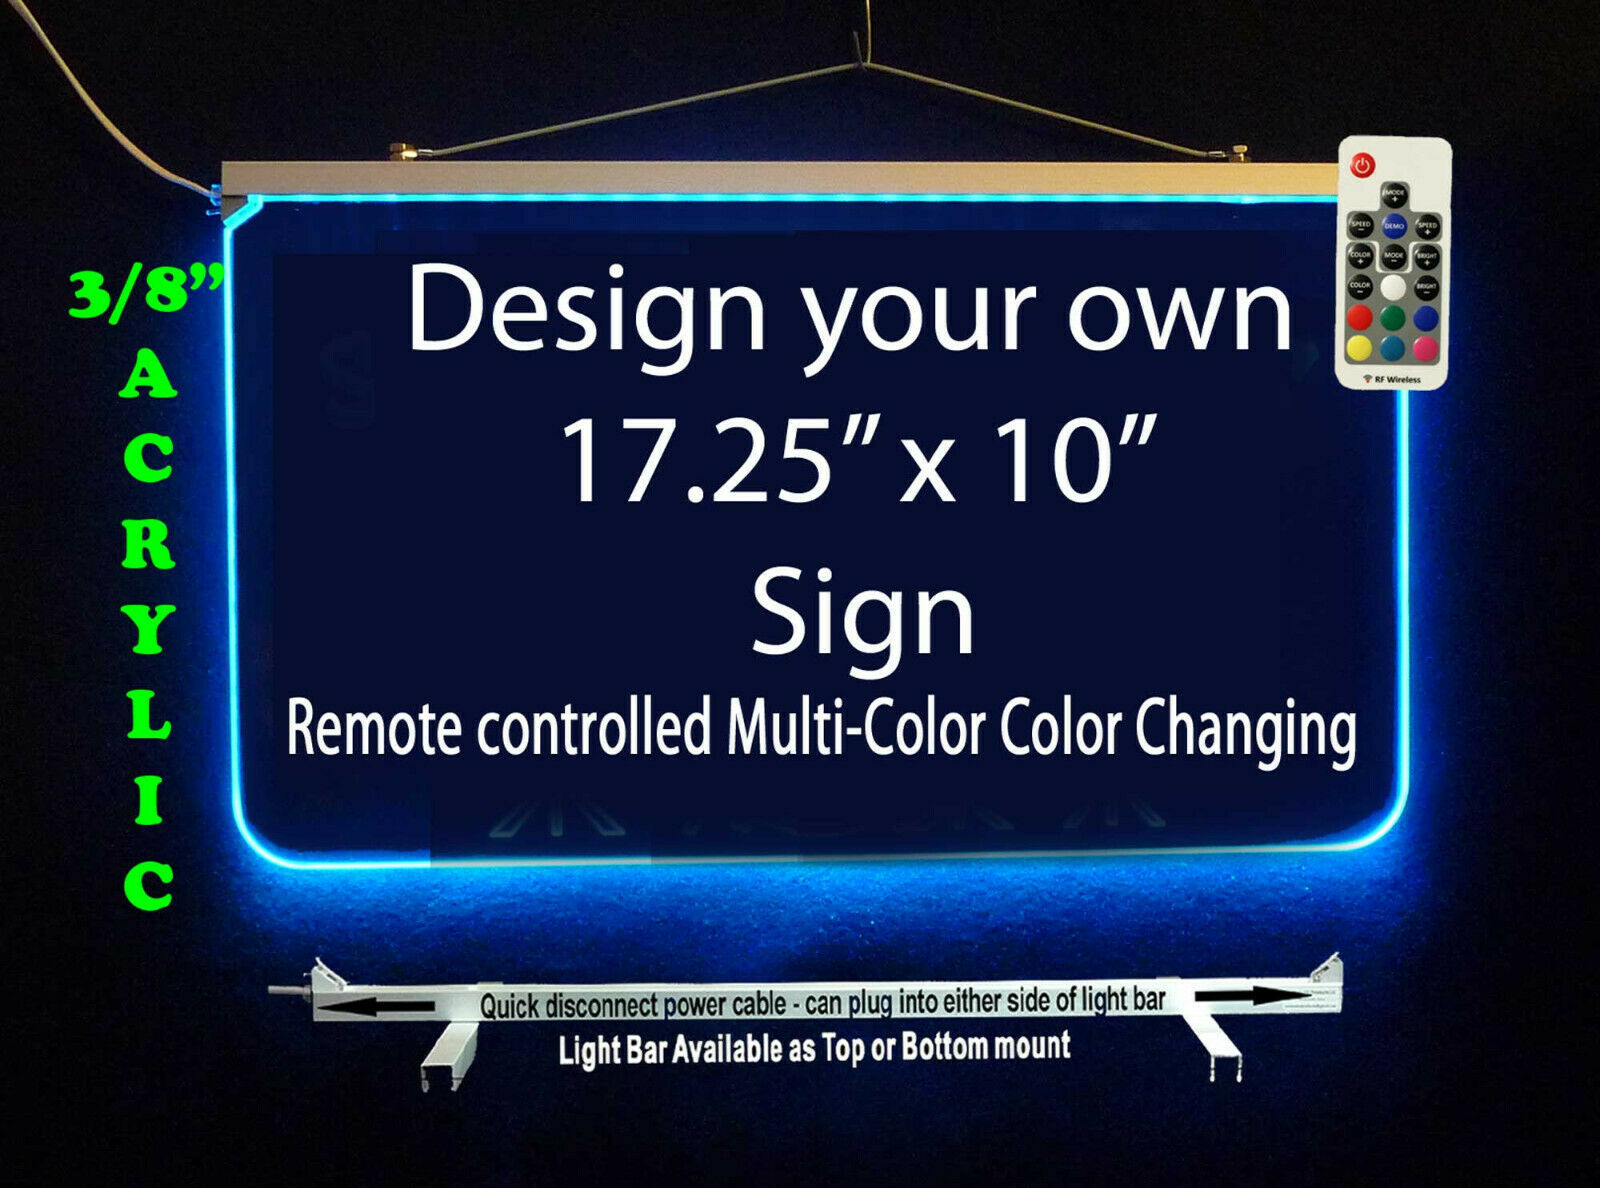 "Primary image for Personalized LED Sign-Design your own Sign,  17.25"" x 10"" Multi-Color Changing"